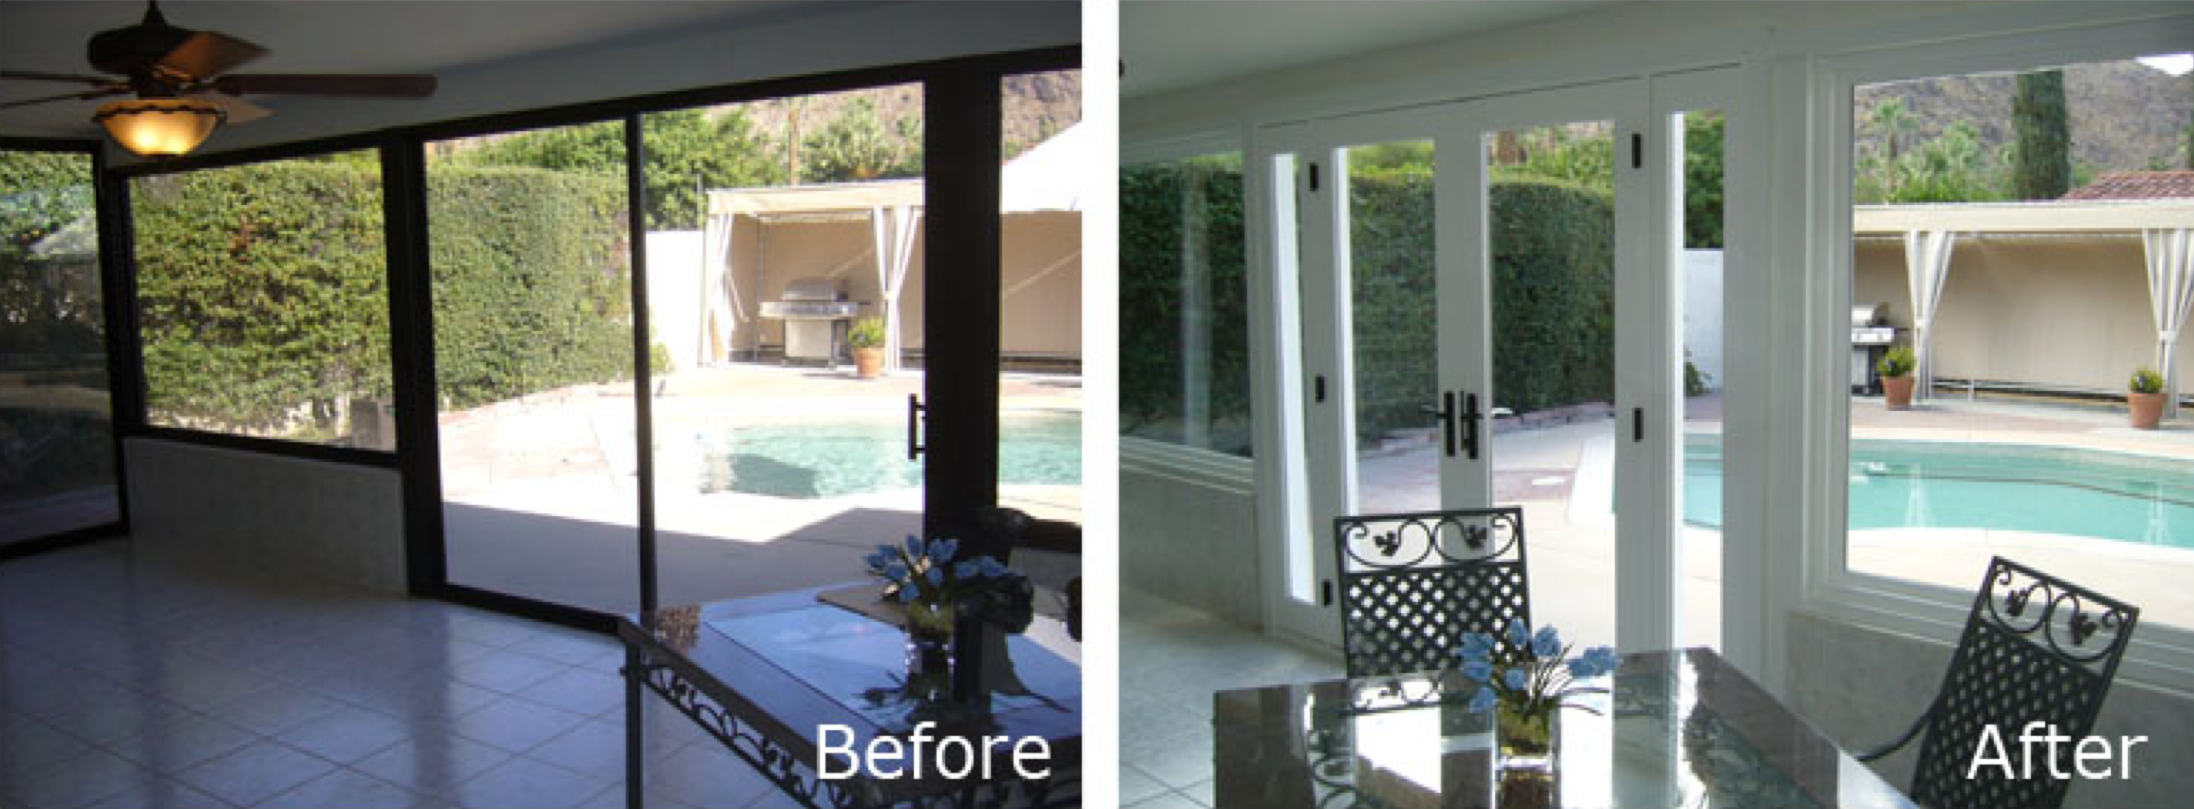 Benefits of updating your home with new windows and for New windows and doors